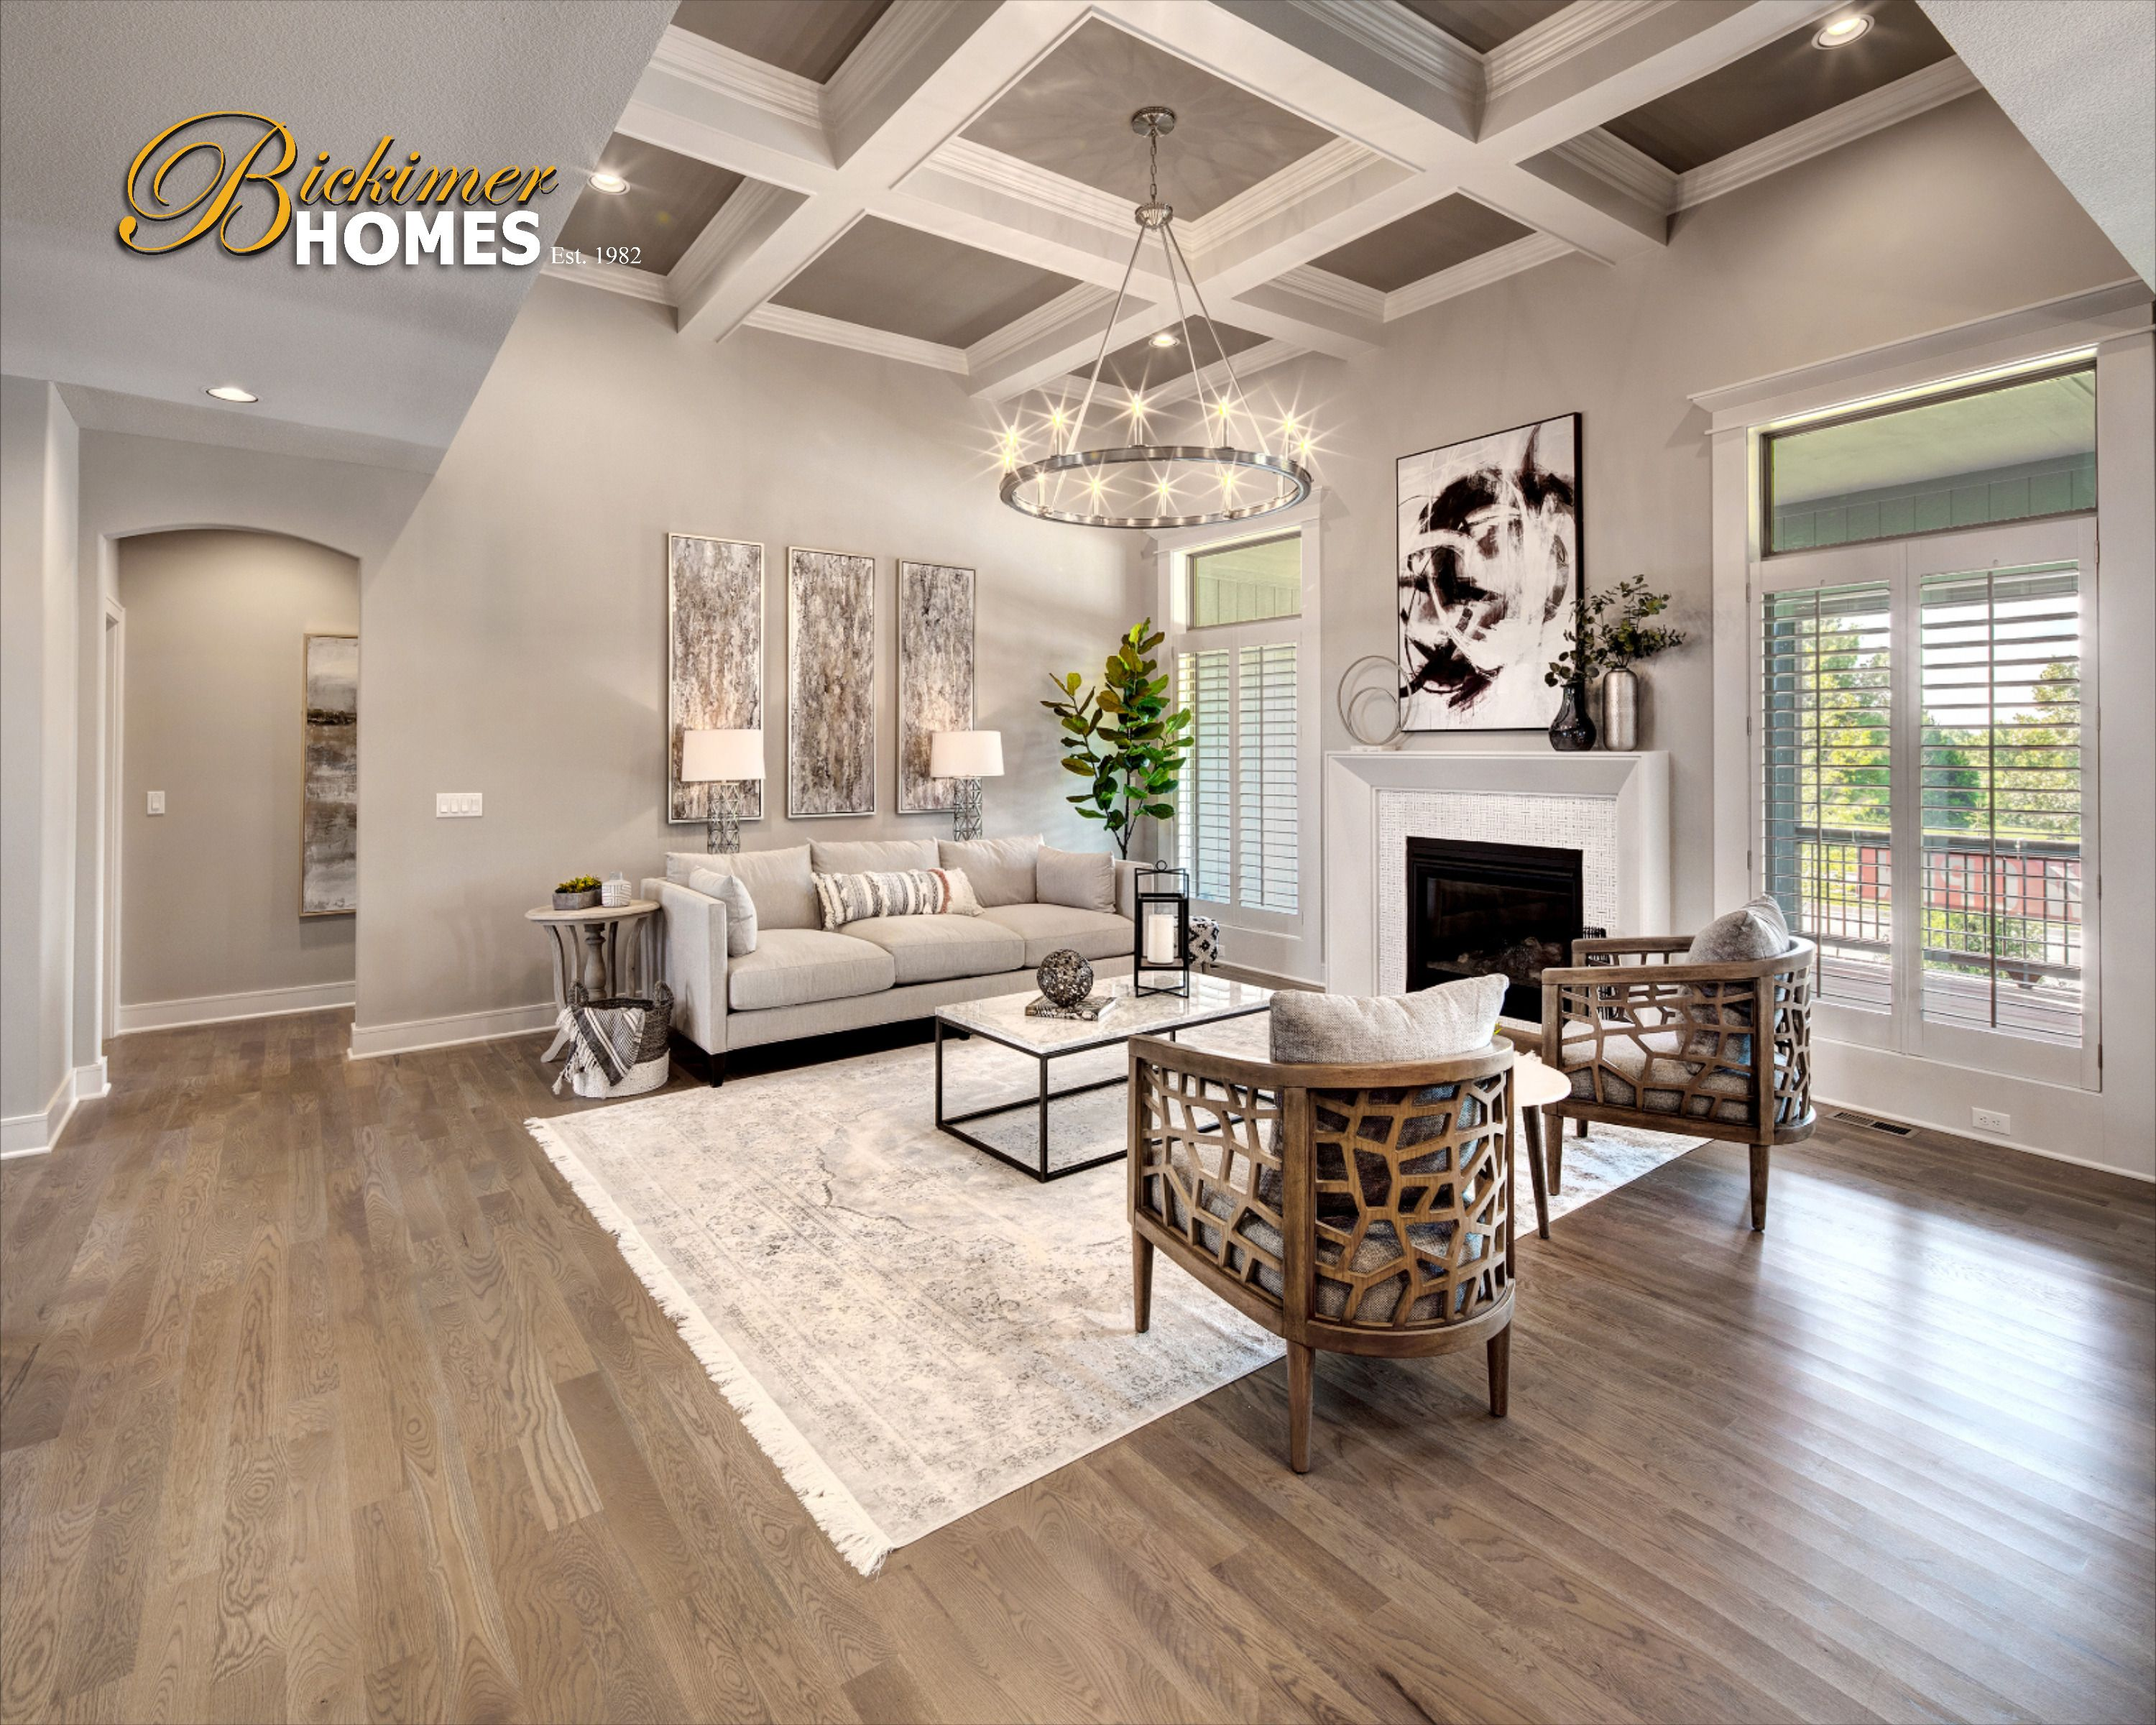 Home Decor Home Model Homes New Home Builders